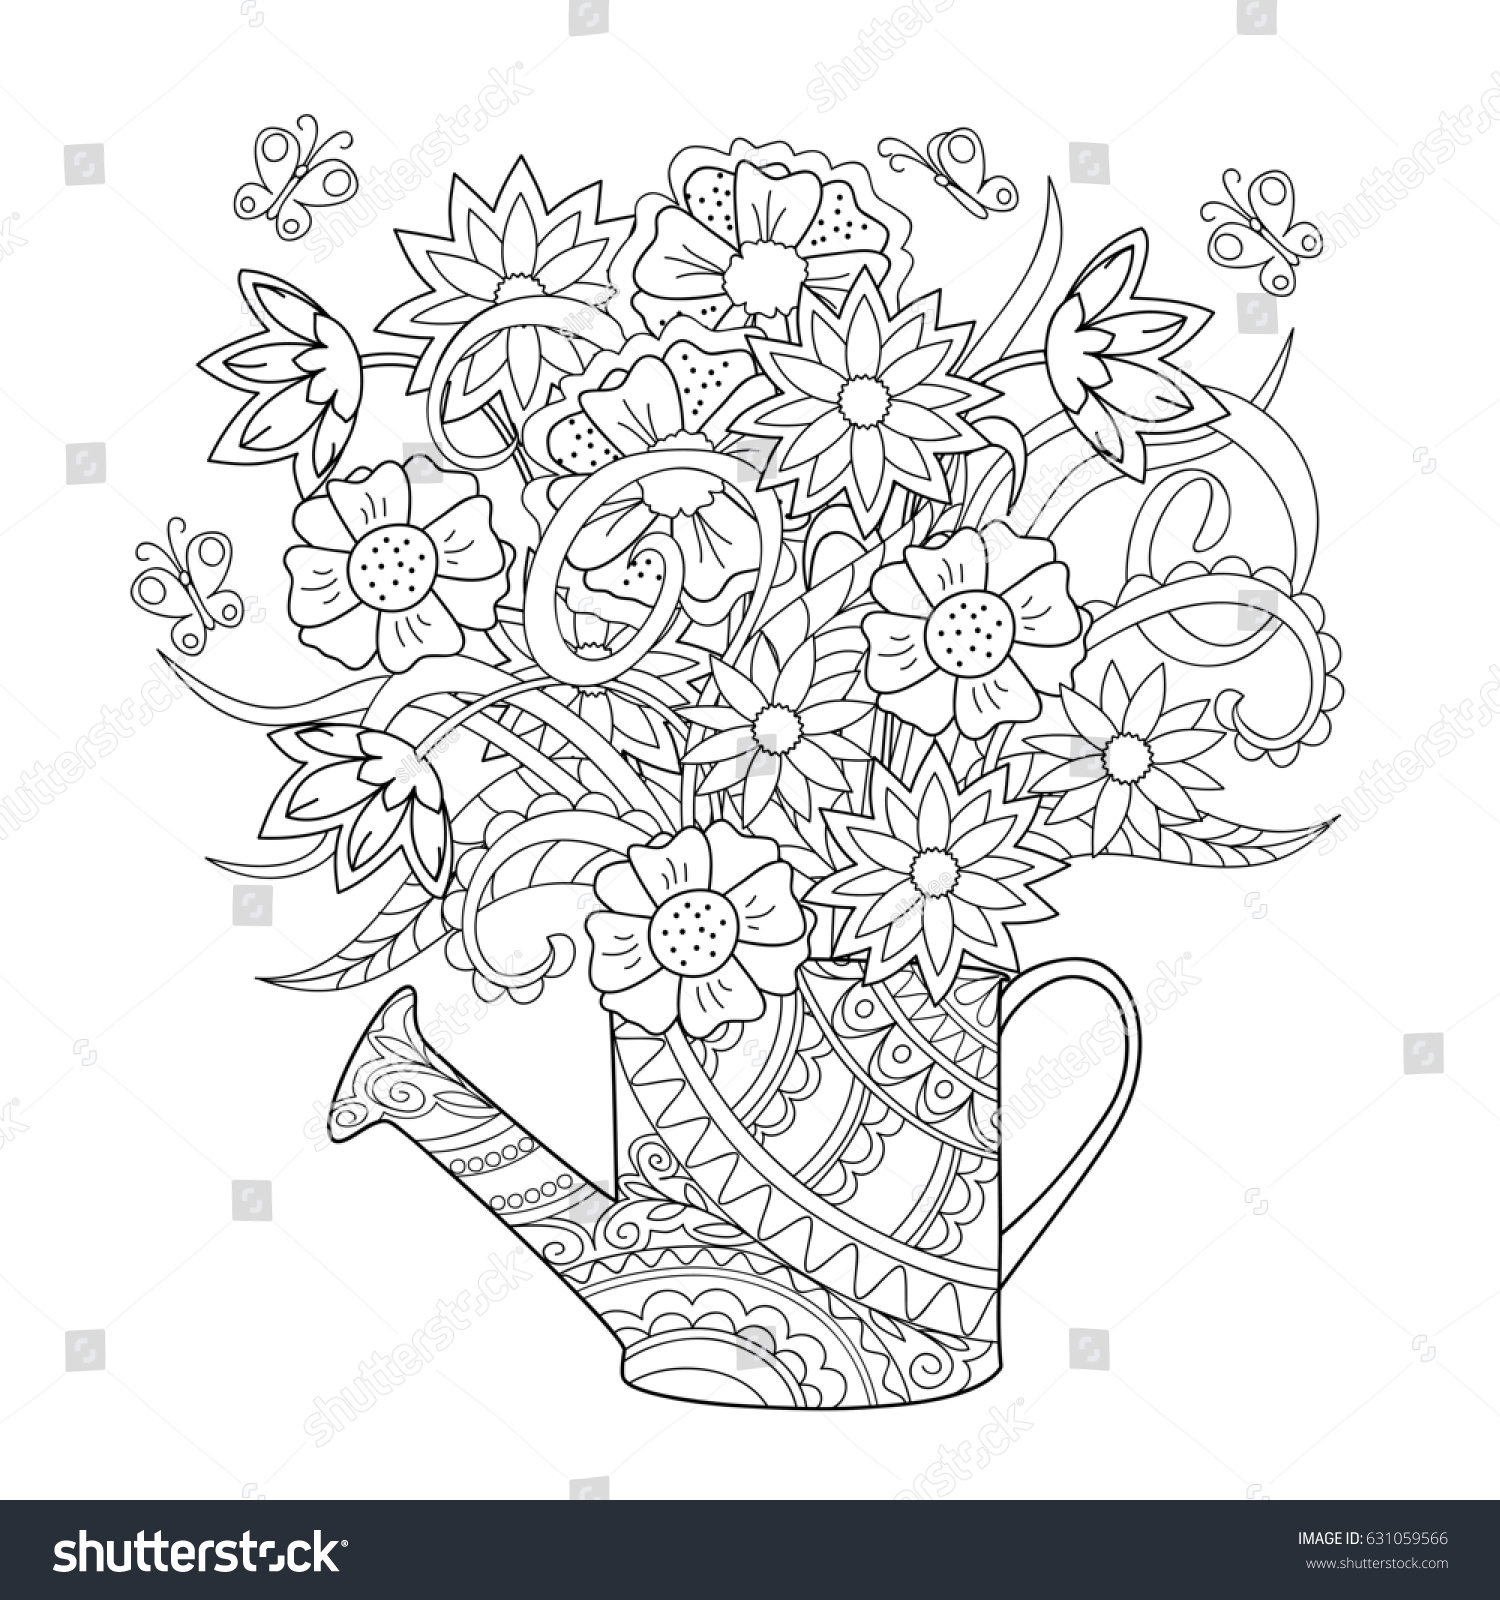 hand drawn decorated image watering can stock illustration